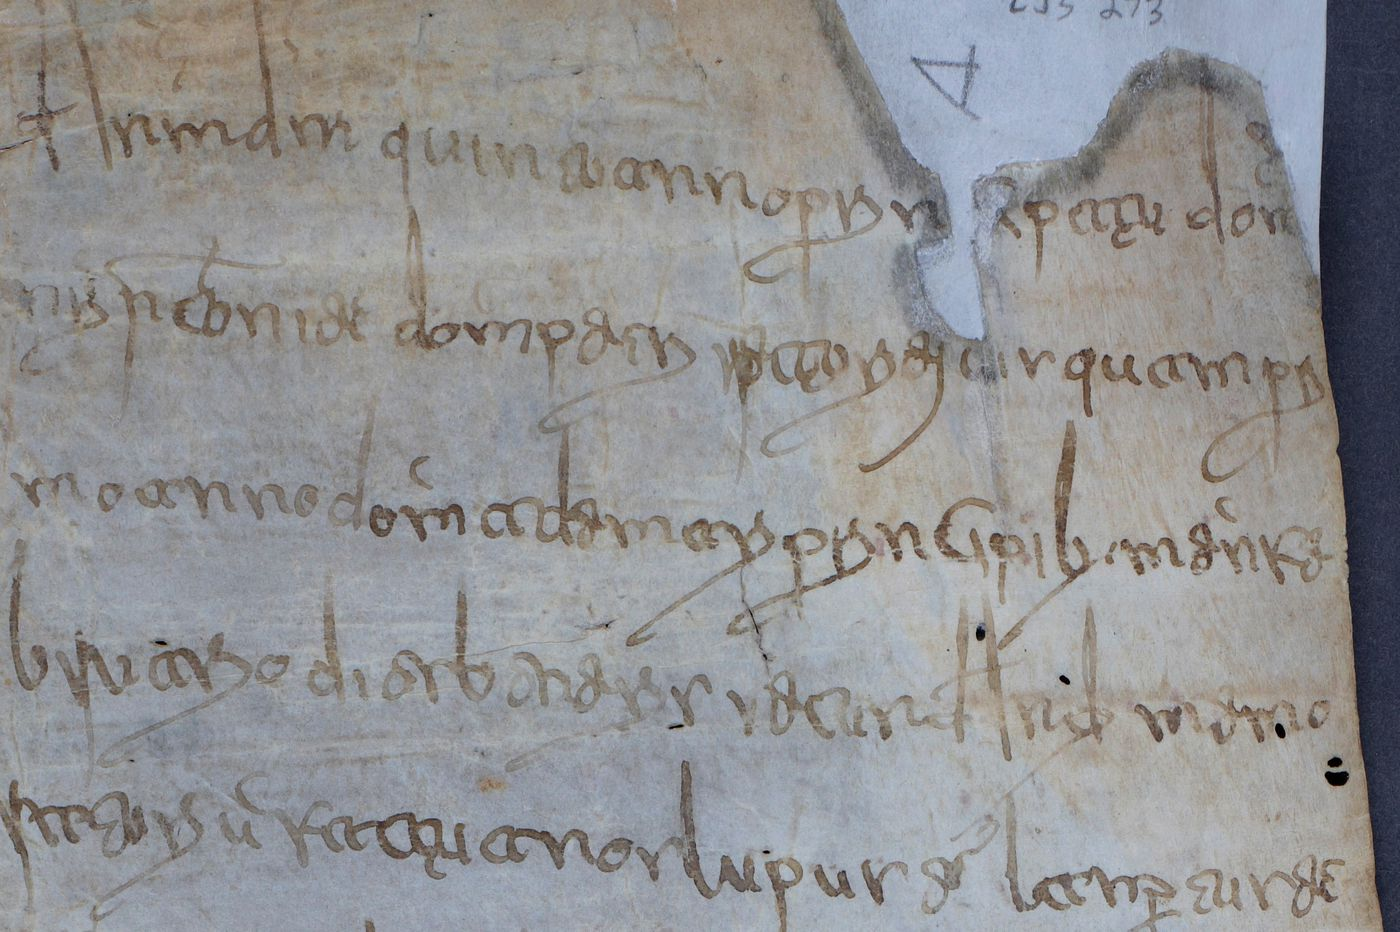 Penn library will return 9th-century documents found to have been stolen from Italian archive